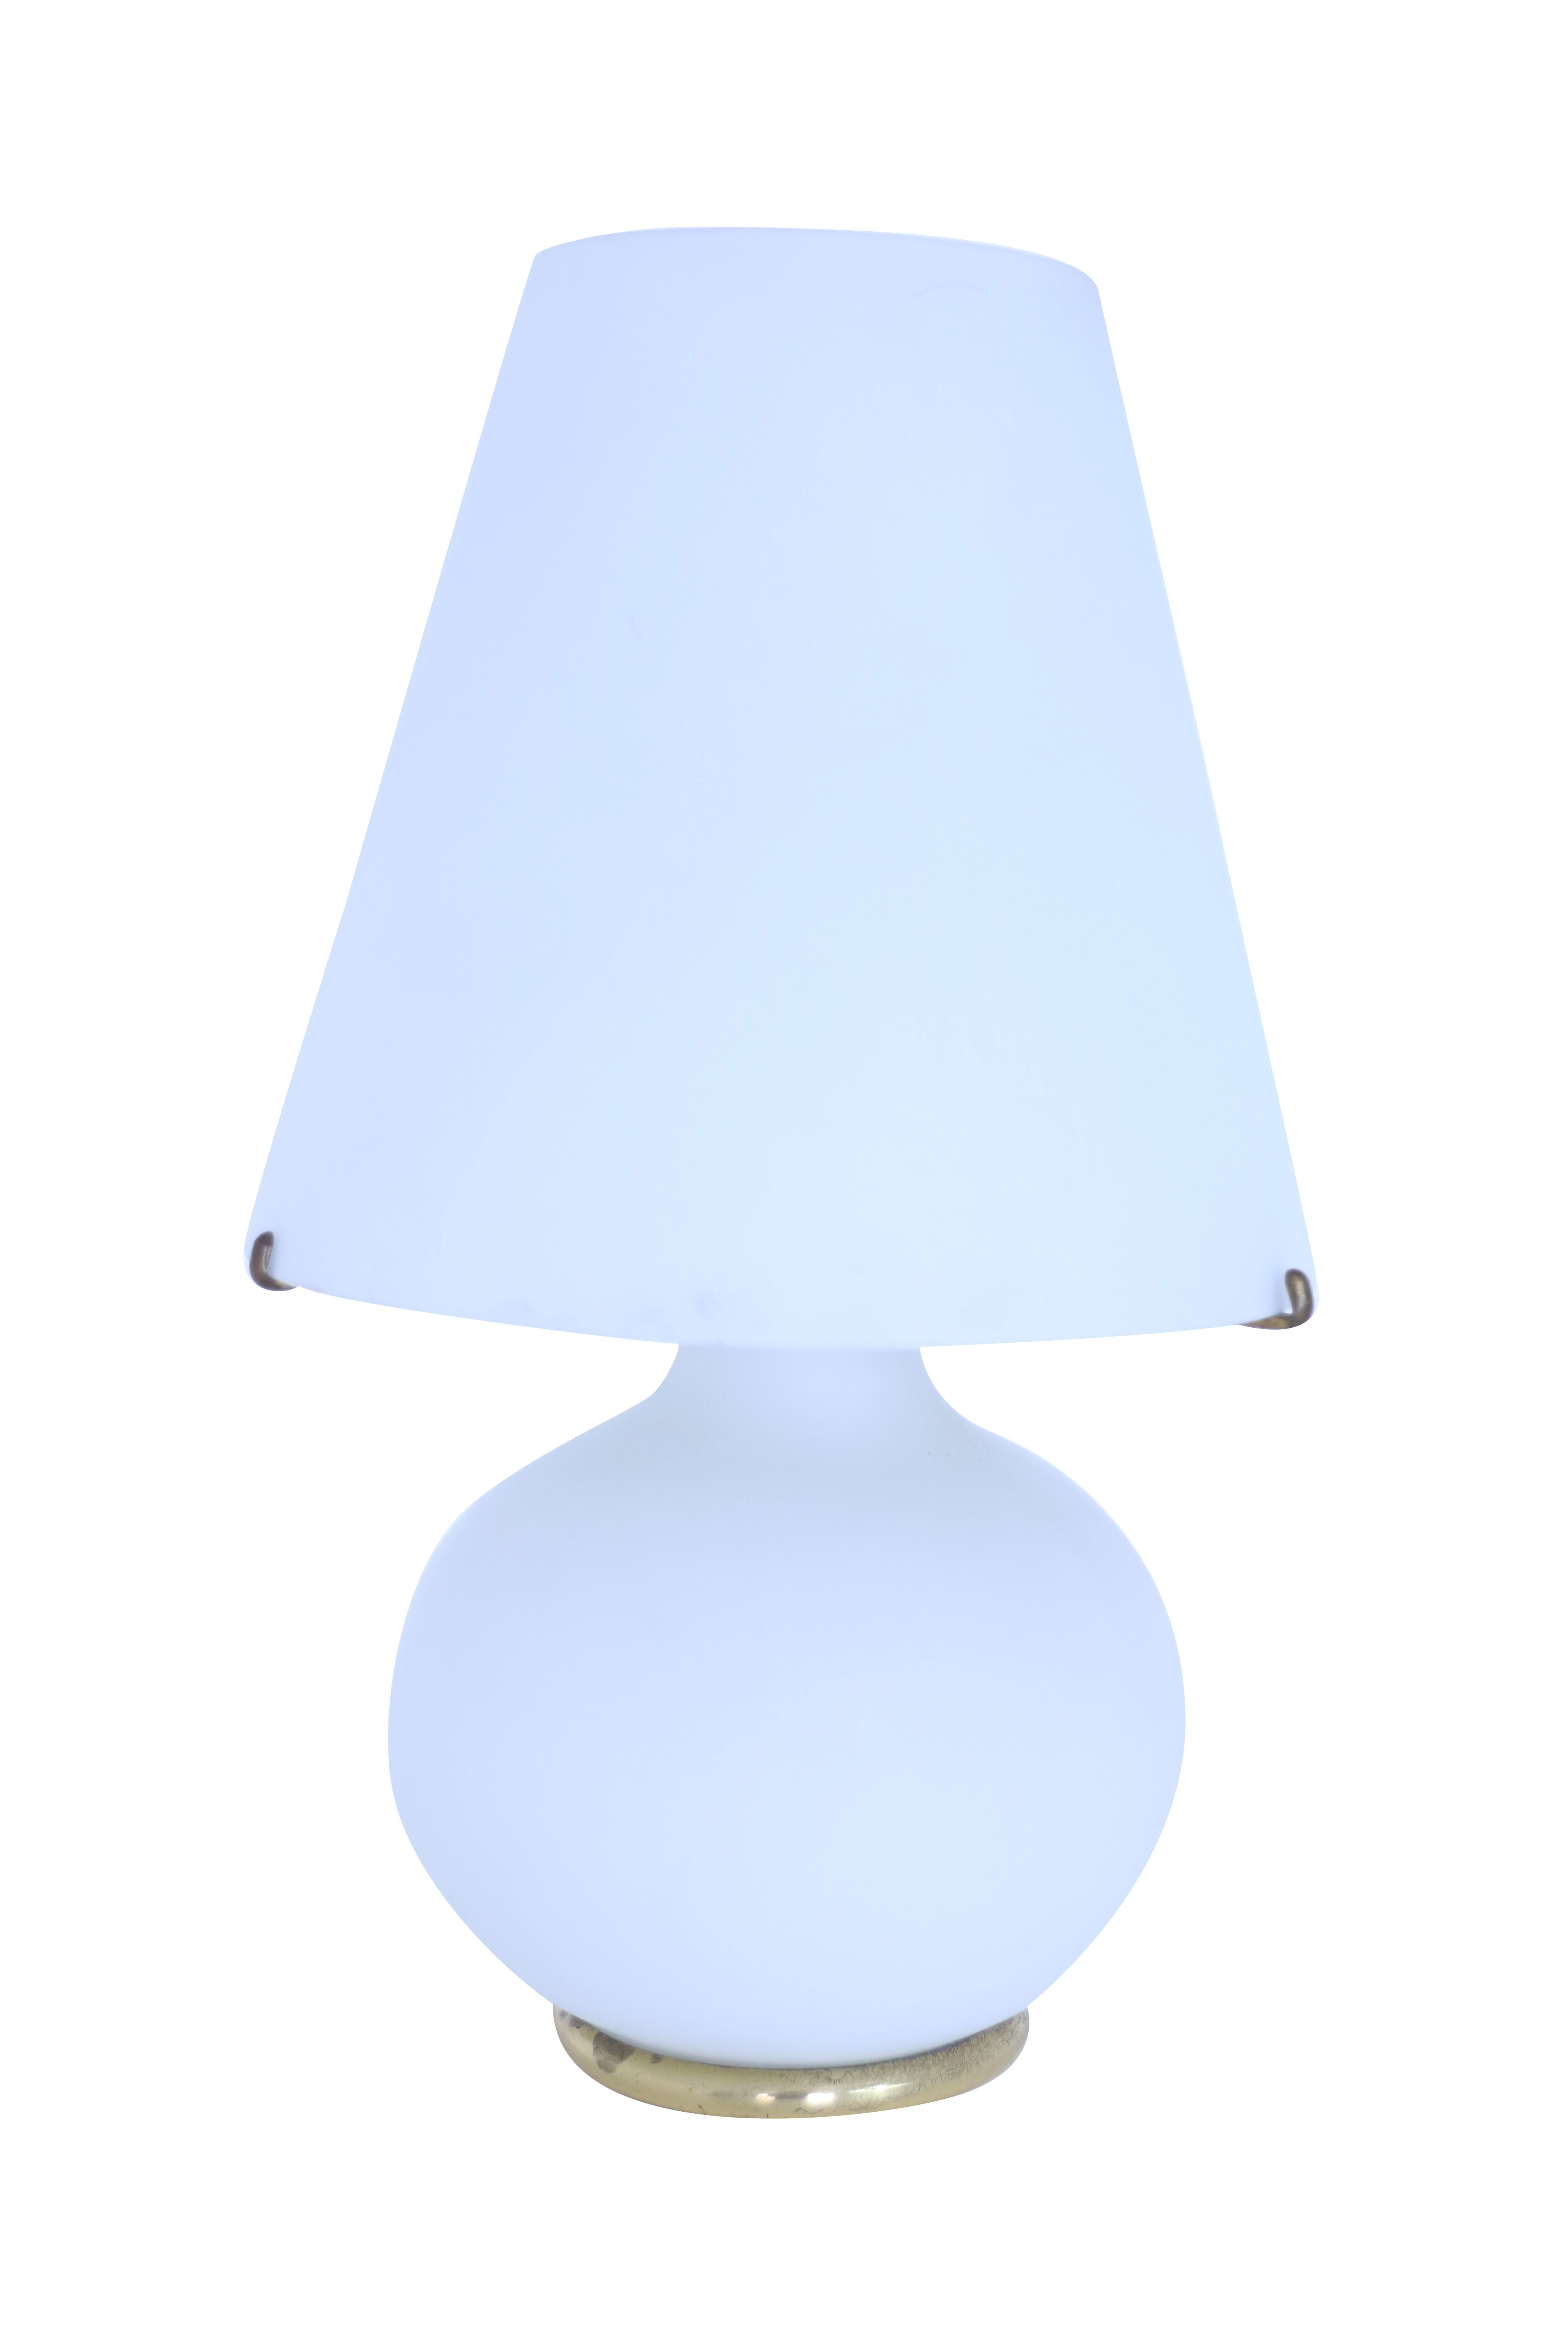 Satined Glass Table Lamp Table Lamp Glass Table Lamp Lamp